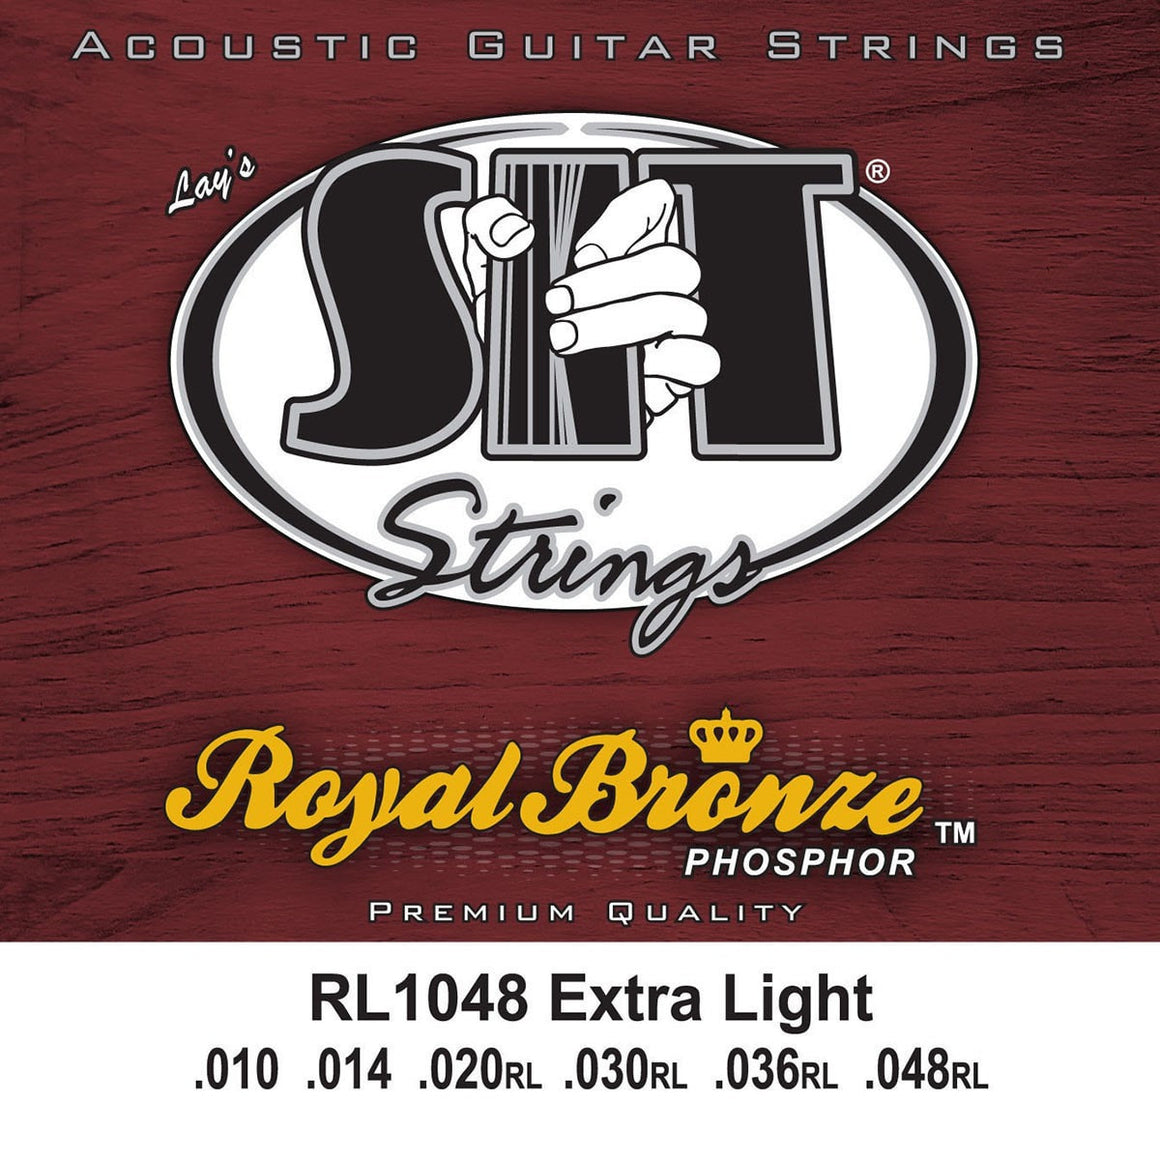 SIT Strings Acoustic Guitar Strings SIT Royal Bronze Extra Light RL1048 Acoustic Guitar Strings